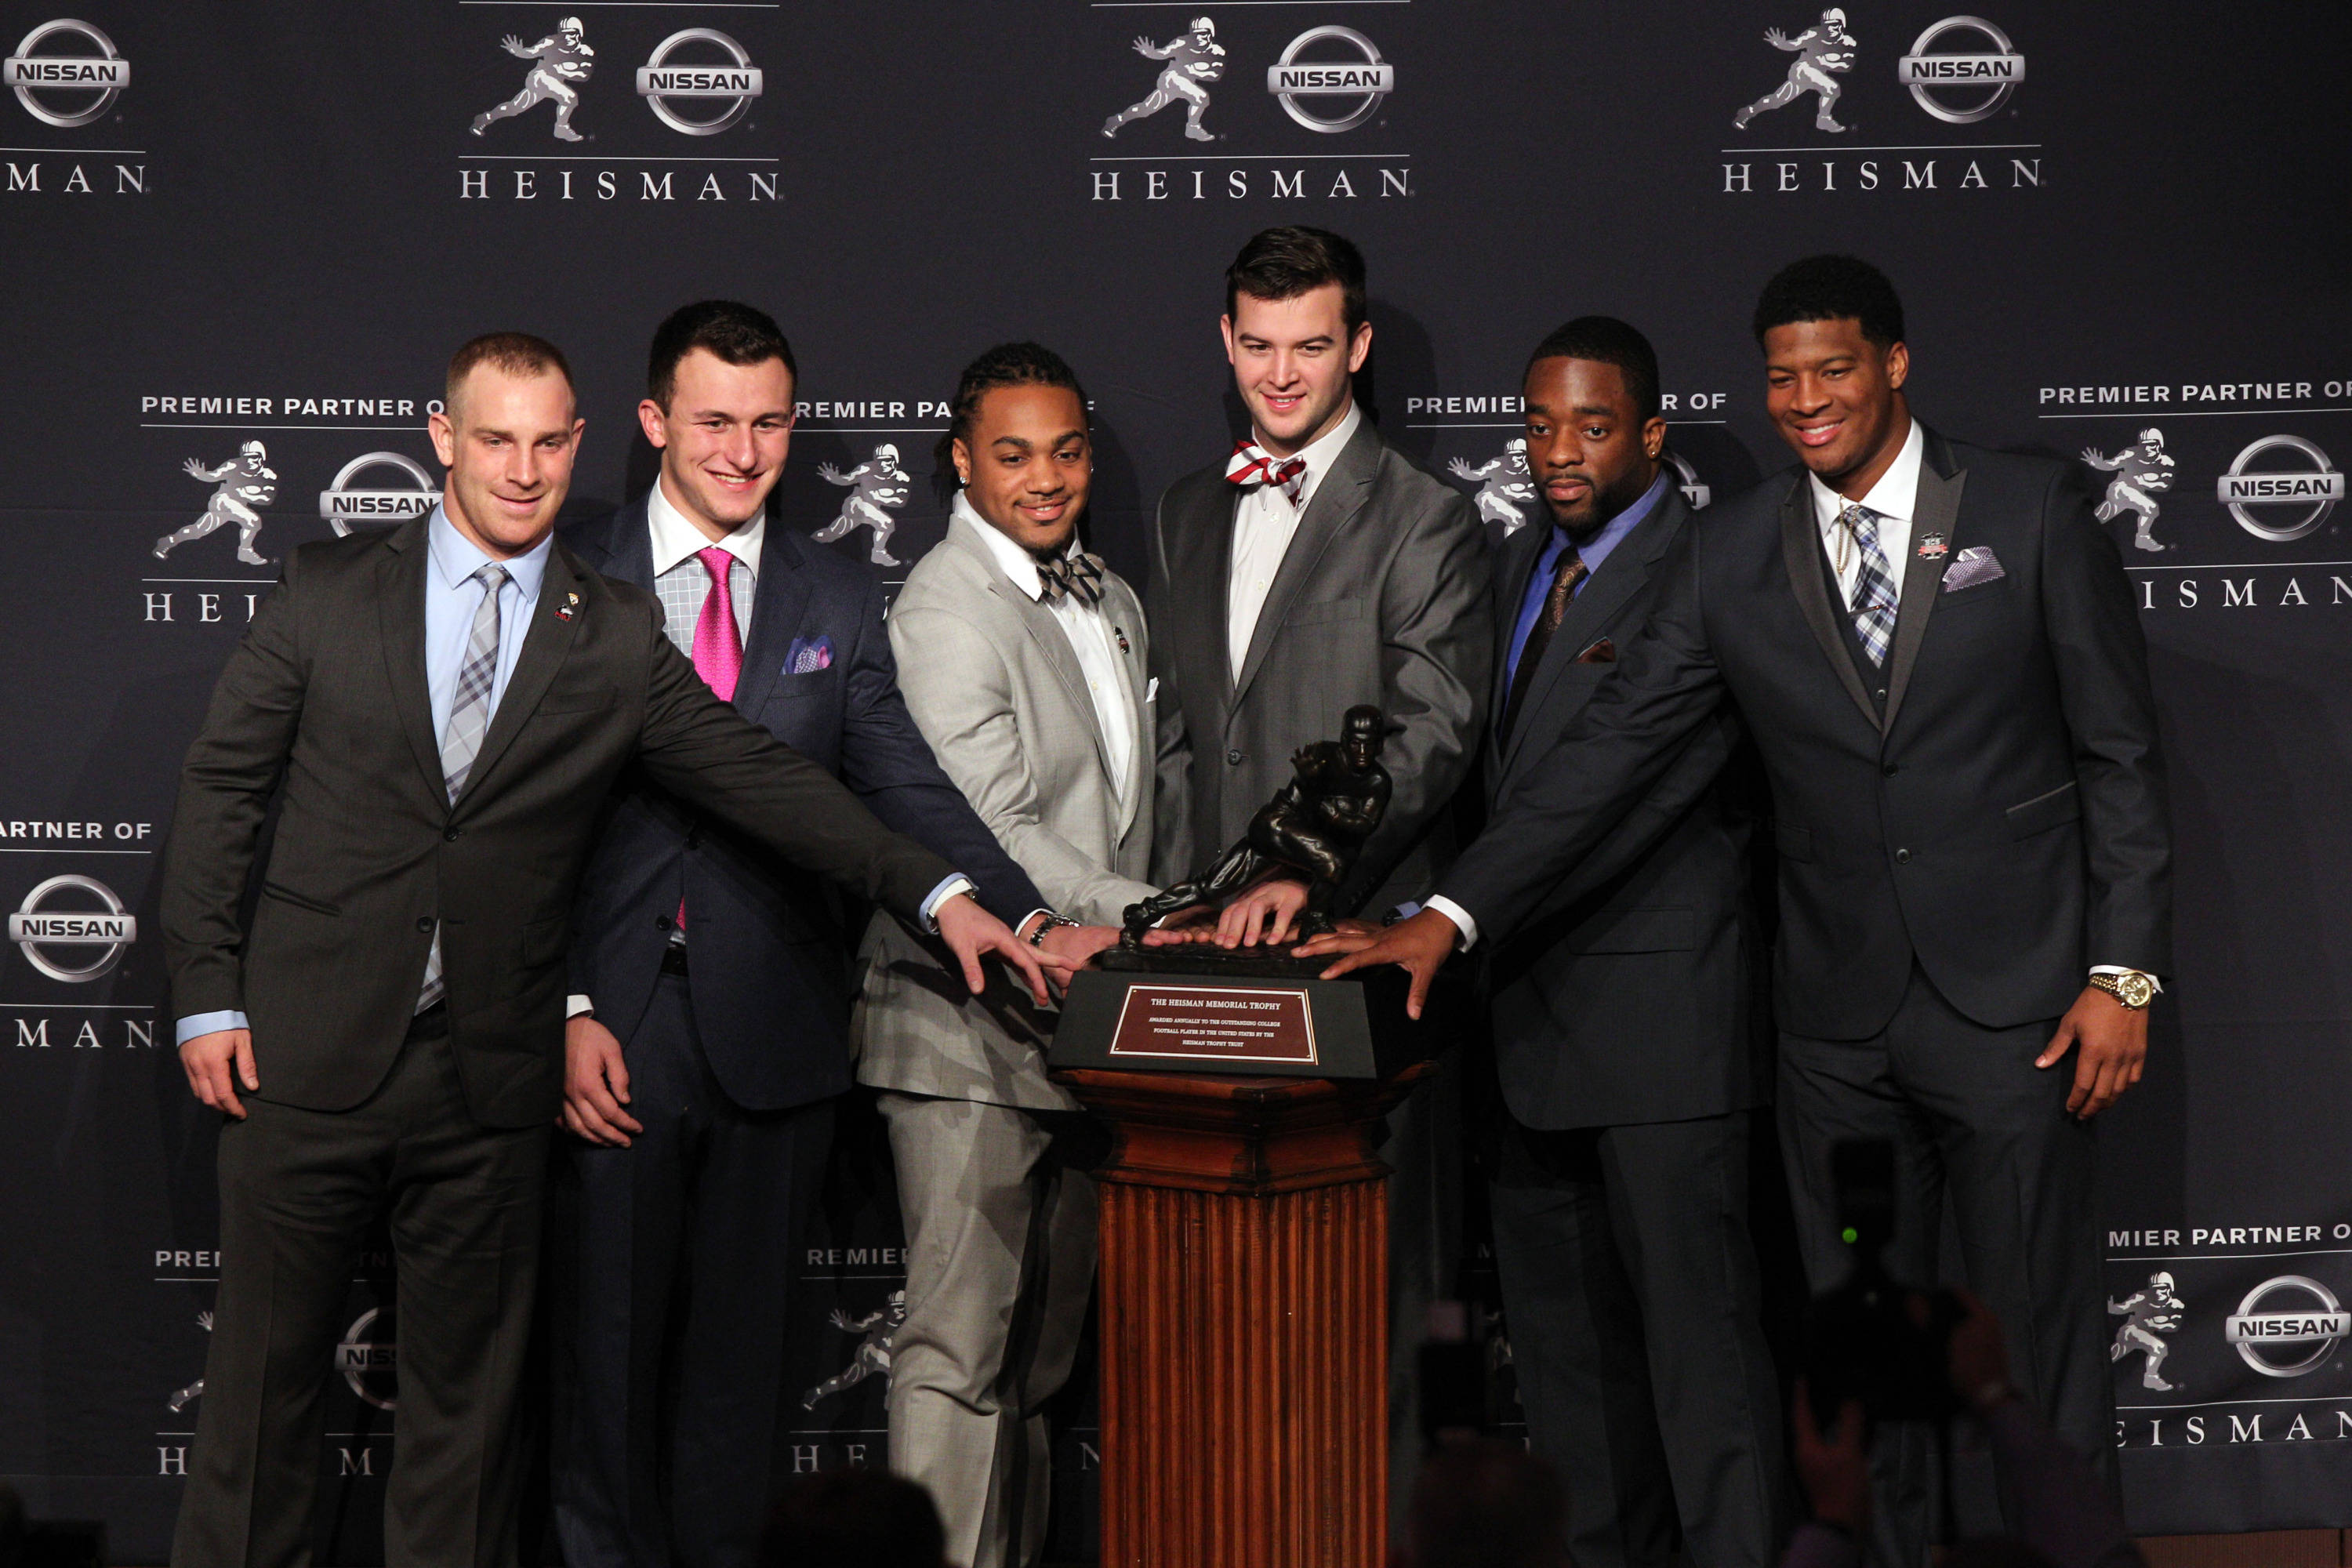 Dec 14, 2013; New York, NY, USA; (From left to right) Nothern Illinois Huskies quarterback Jordan Lynch, and Texas A&M Aggies quarterback Johnny Manziel, and Auburn Tigers running back Tre Mason, and Alabama Crimson Tide quarterback AJ McCarron, and Boston College Eagles running back Andre Williams, and Florida State Seminoles quarterback Jameis Winston pose for a photo during a press conference before the announcement of the 2013 Heisman Trophy winner at the New York Marriott Marquis Times